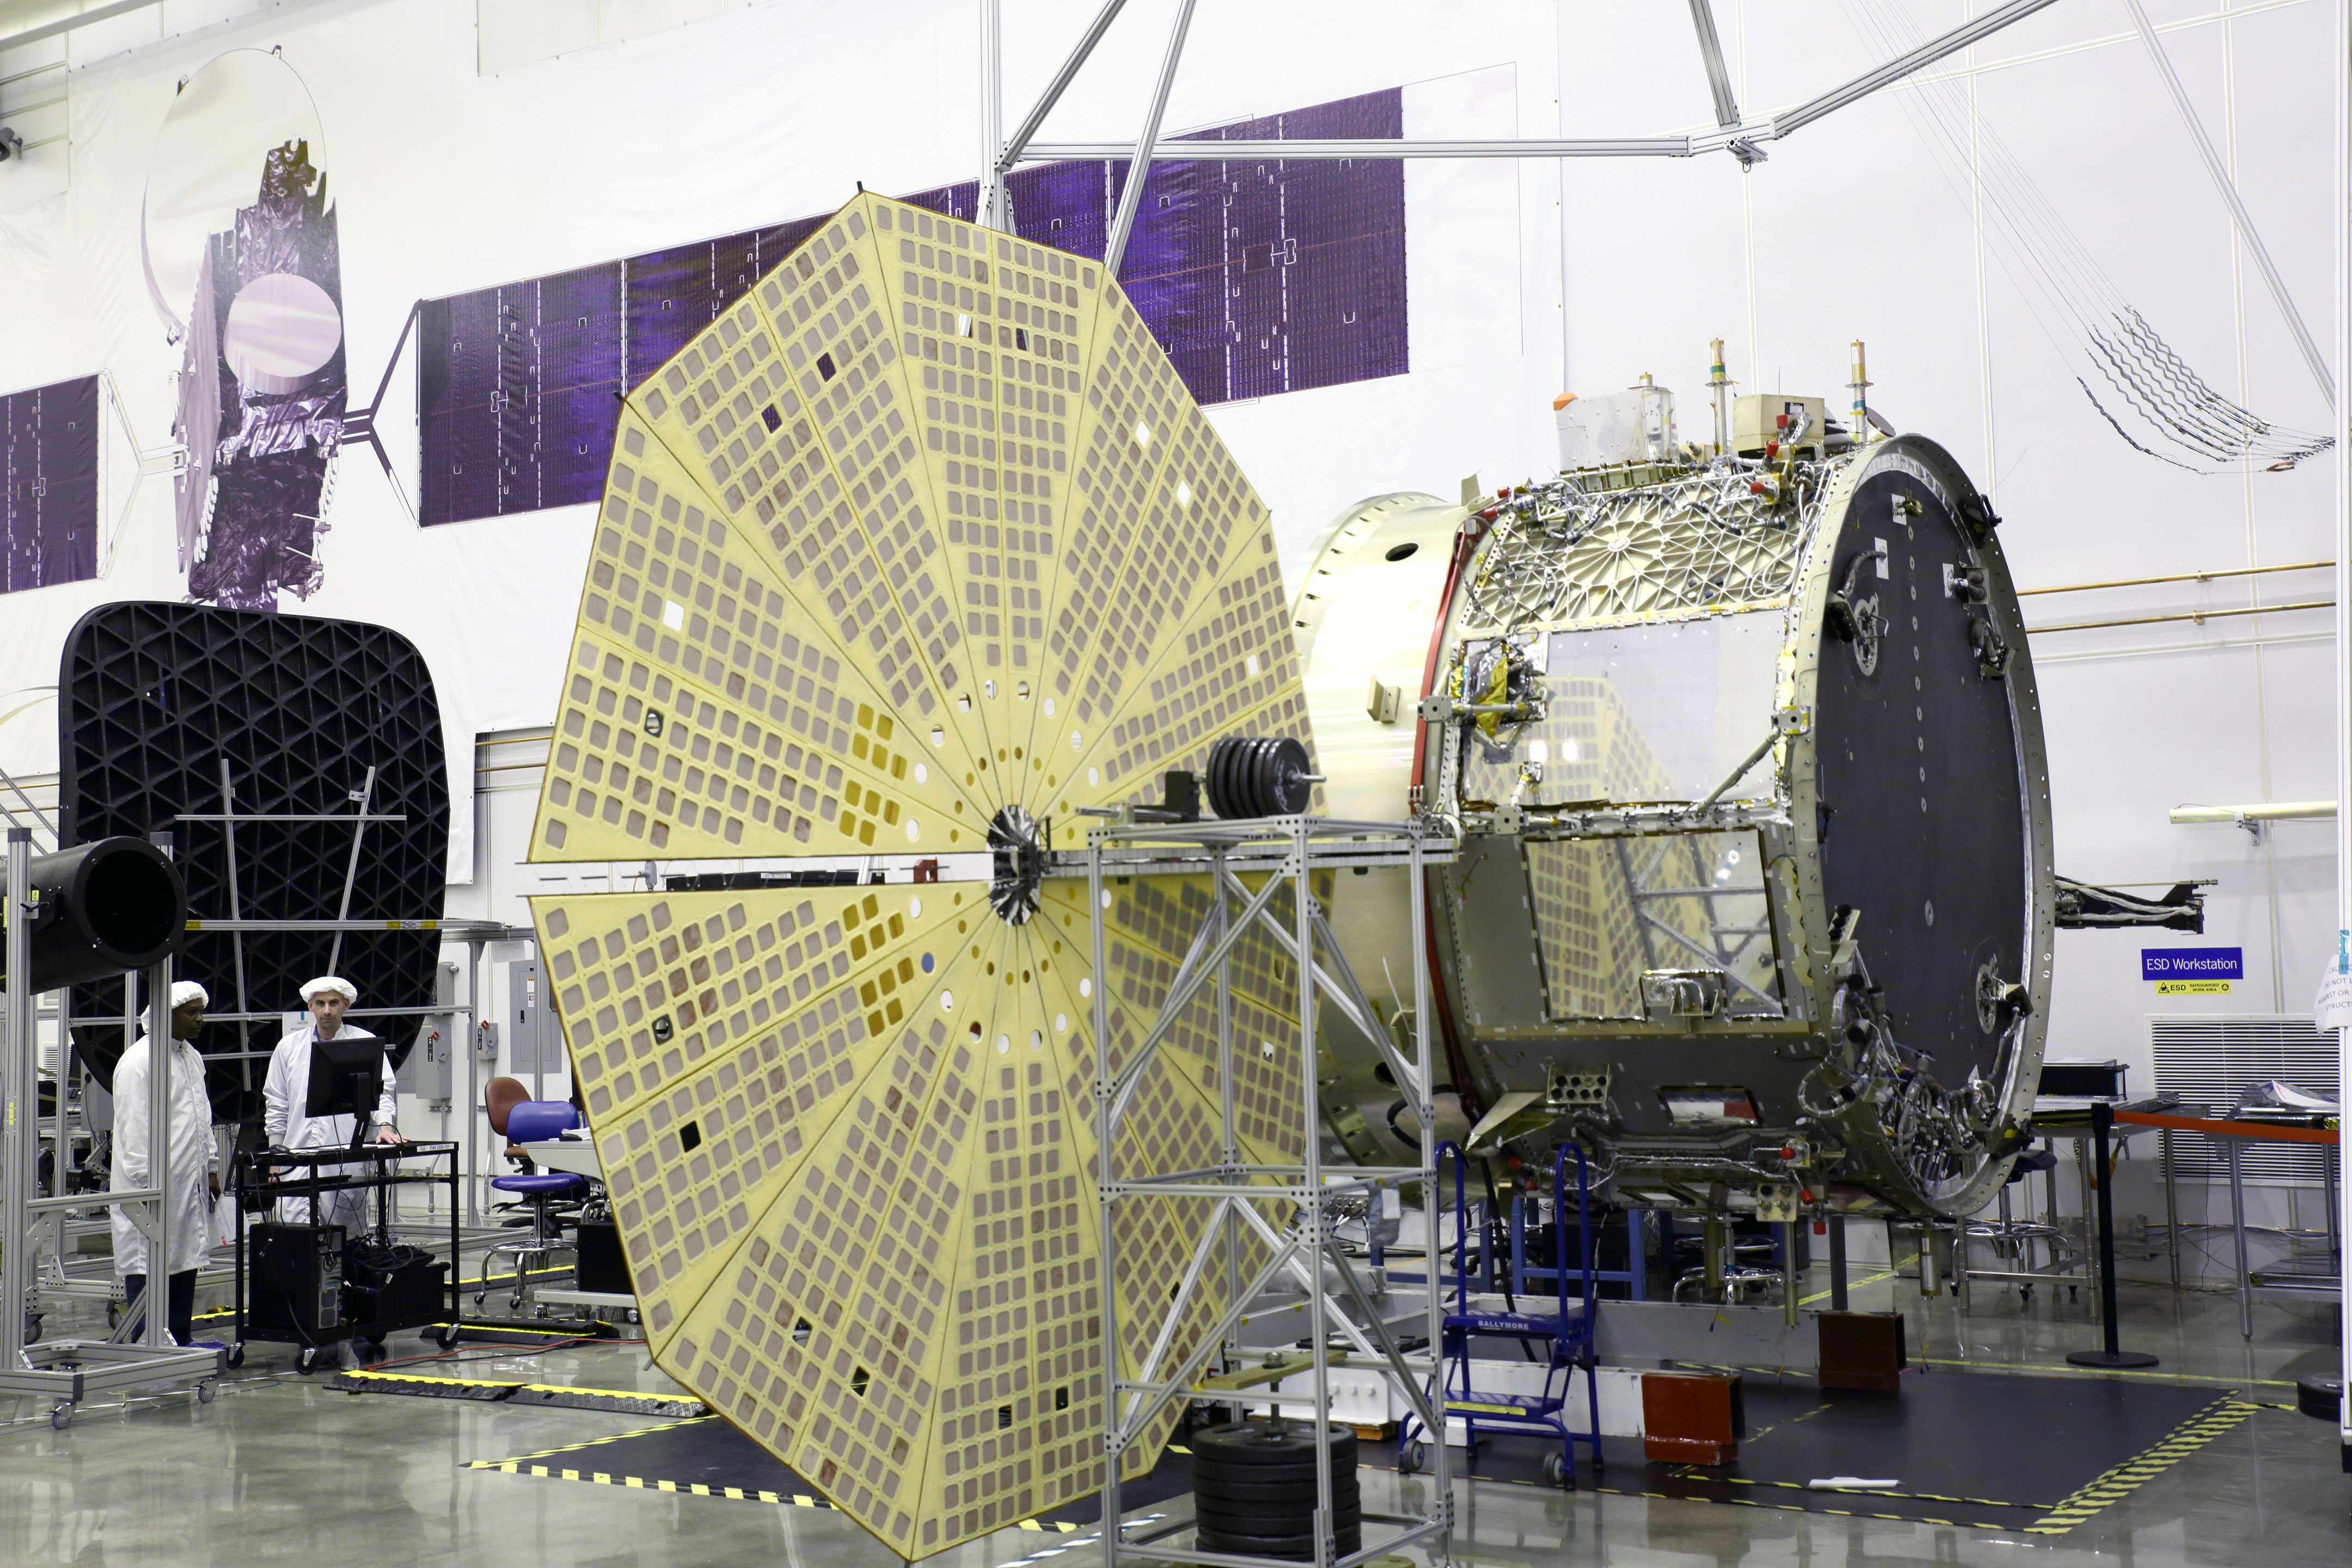 Cygnus service module built by Orbital ATK in their Dulles, Virginia cleanroom is shown here with unfurled Ultraflex solar panels that will fly for the first time with mated pressurized module on the OA-4 ISS resupply mission on ULA Atlas V rocket on Dec. 3, 2015 from Cape Canaveral, Florida.    Credit: Orbital ATK